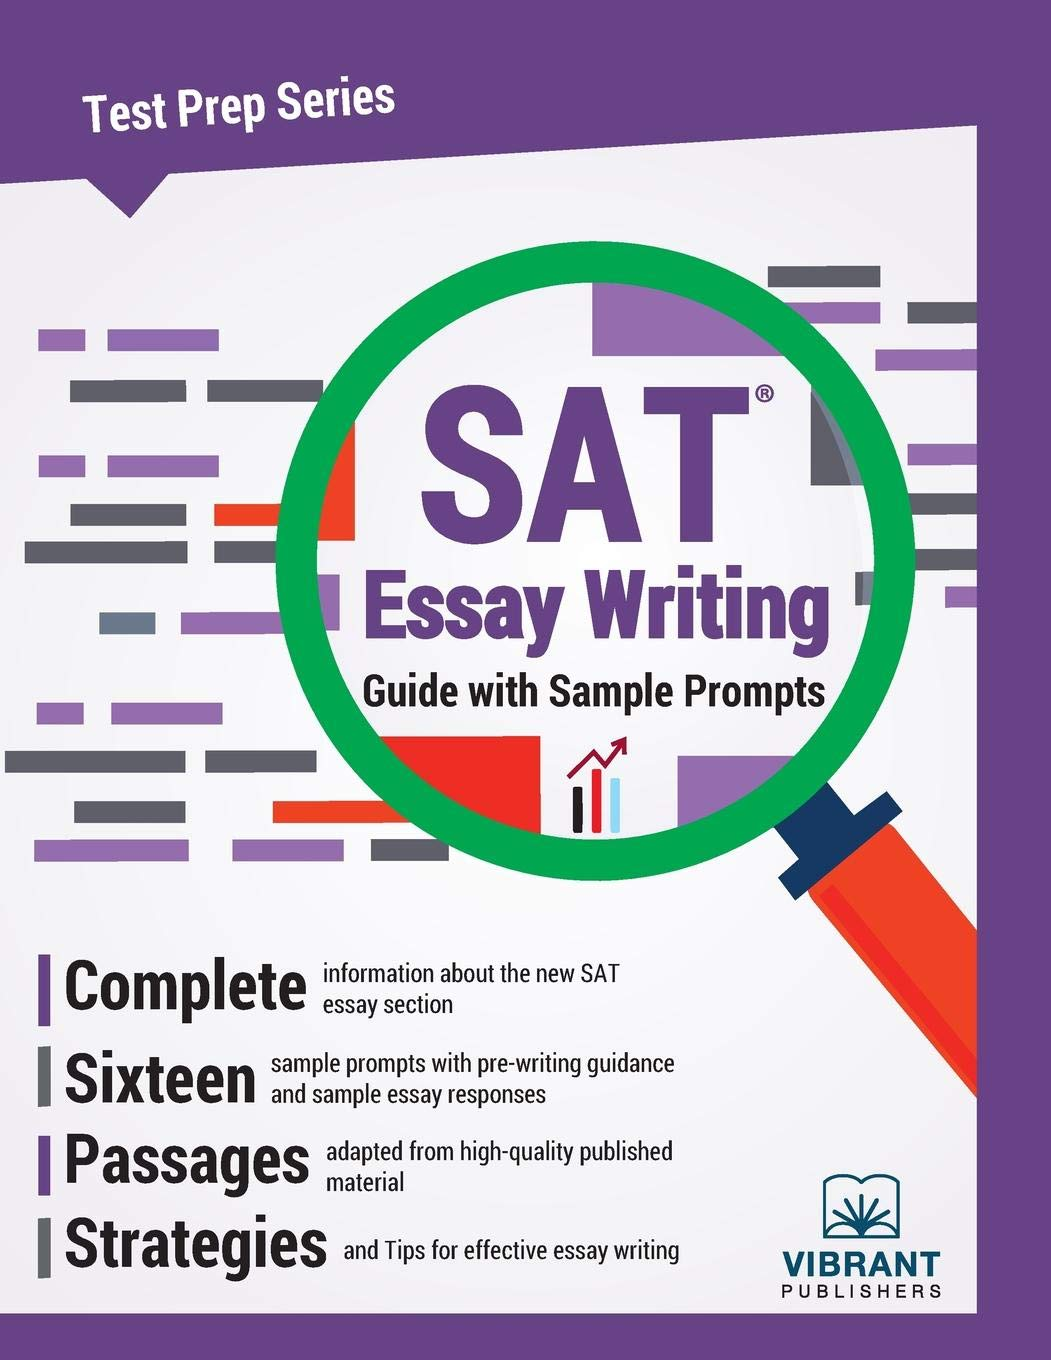 SAT Essay Writing Guide with Sample Prompts: 30 Test Prep